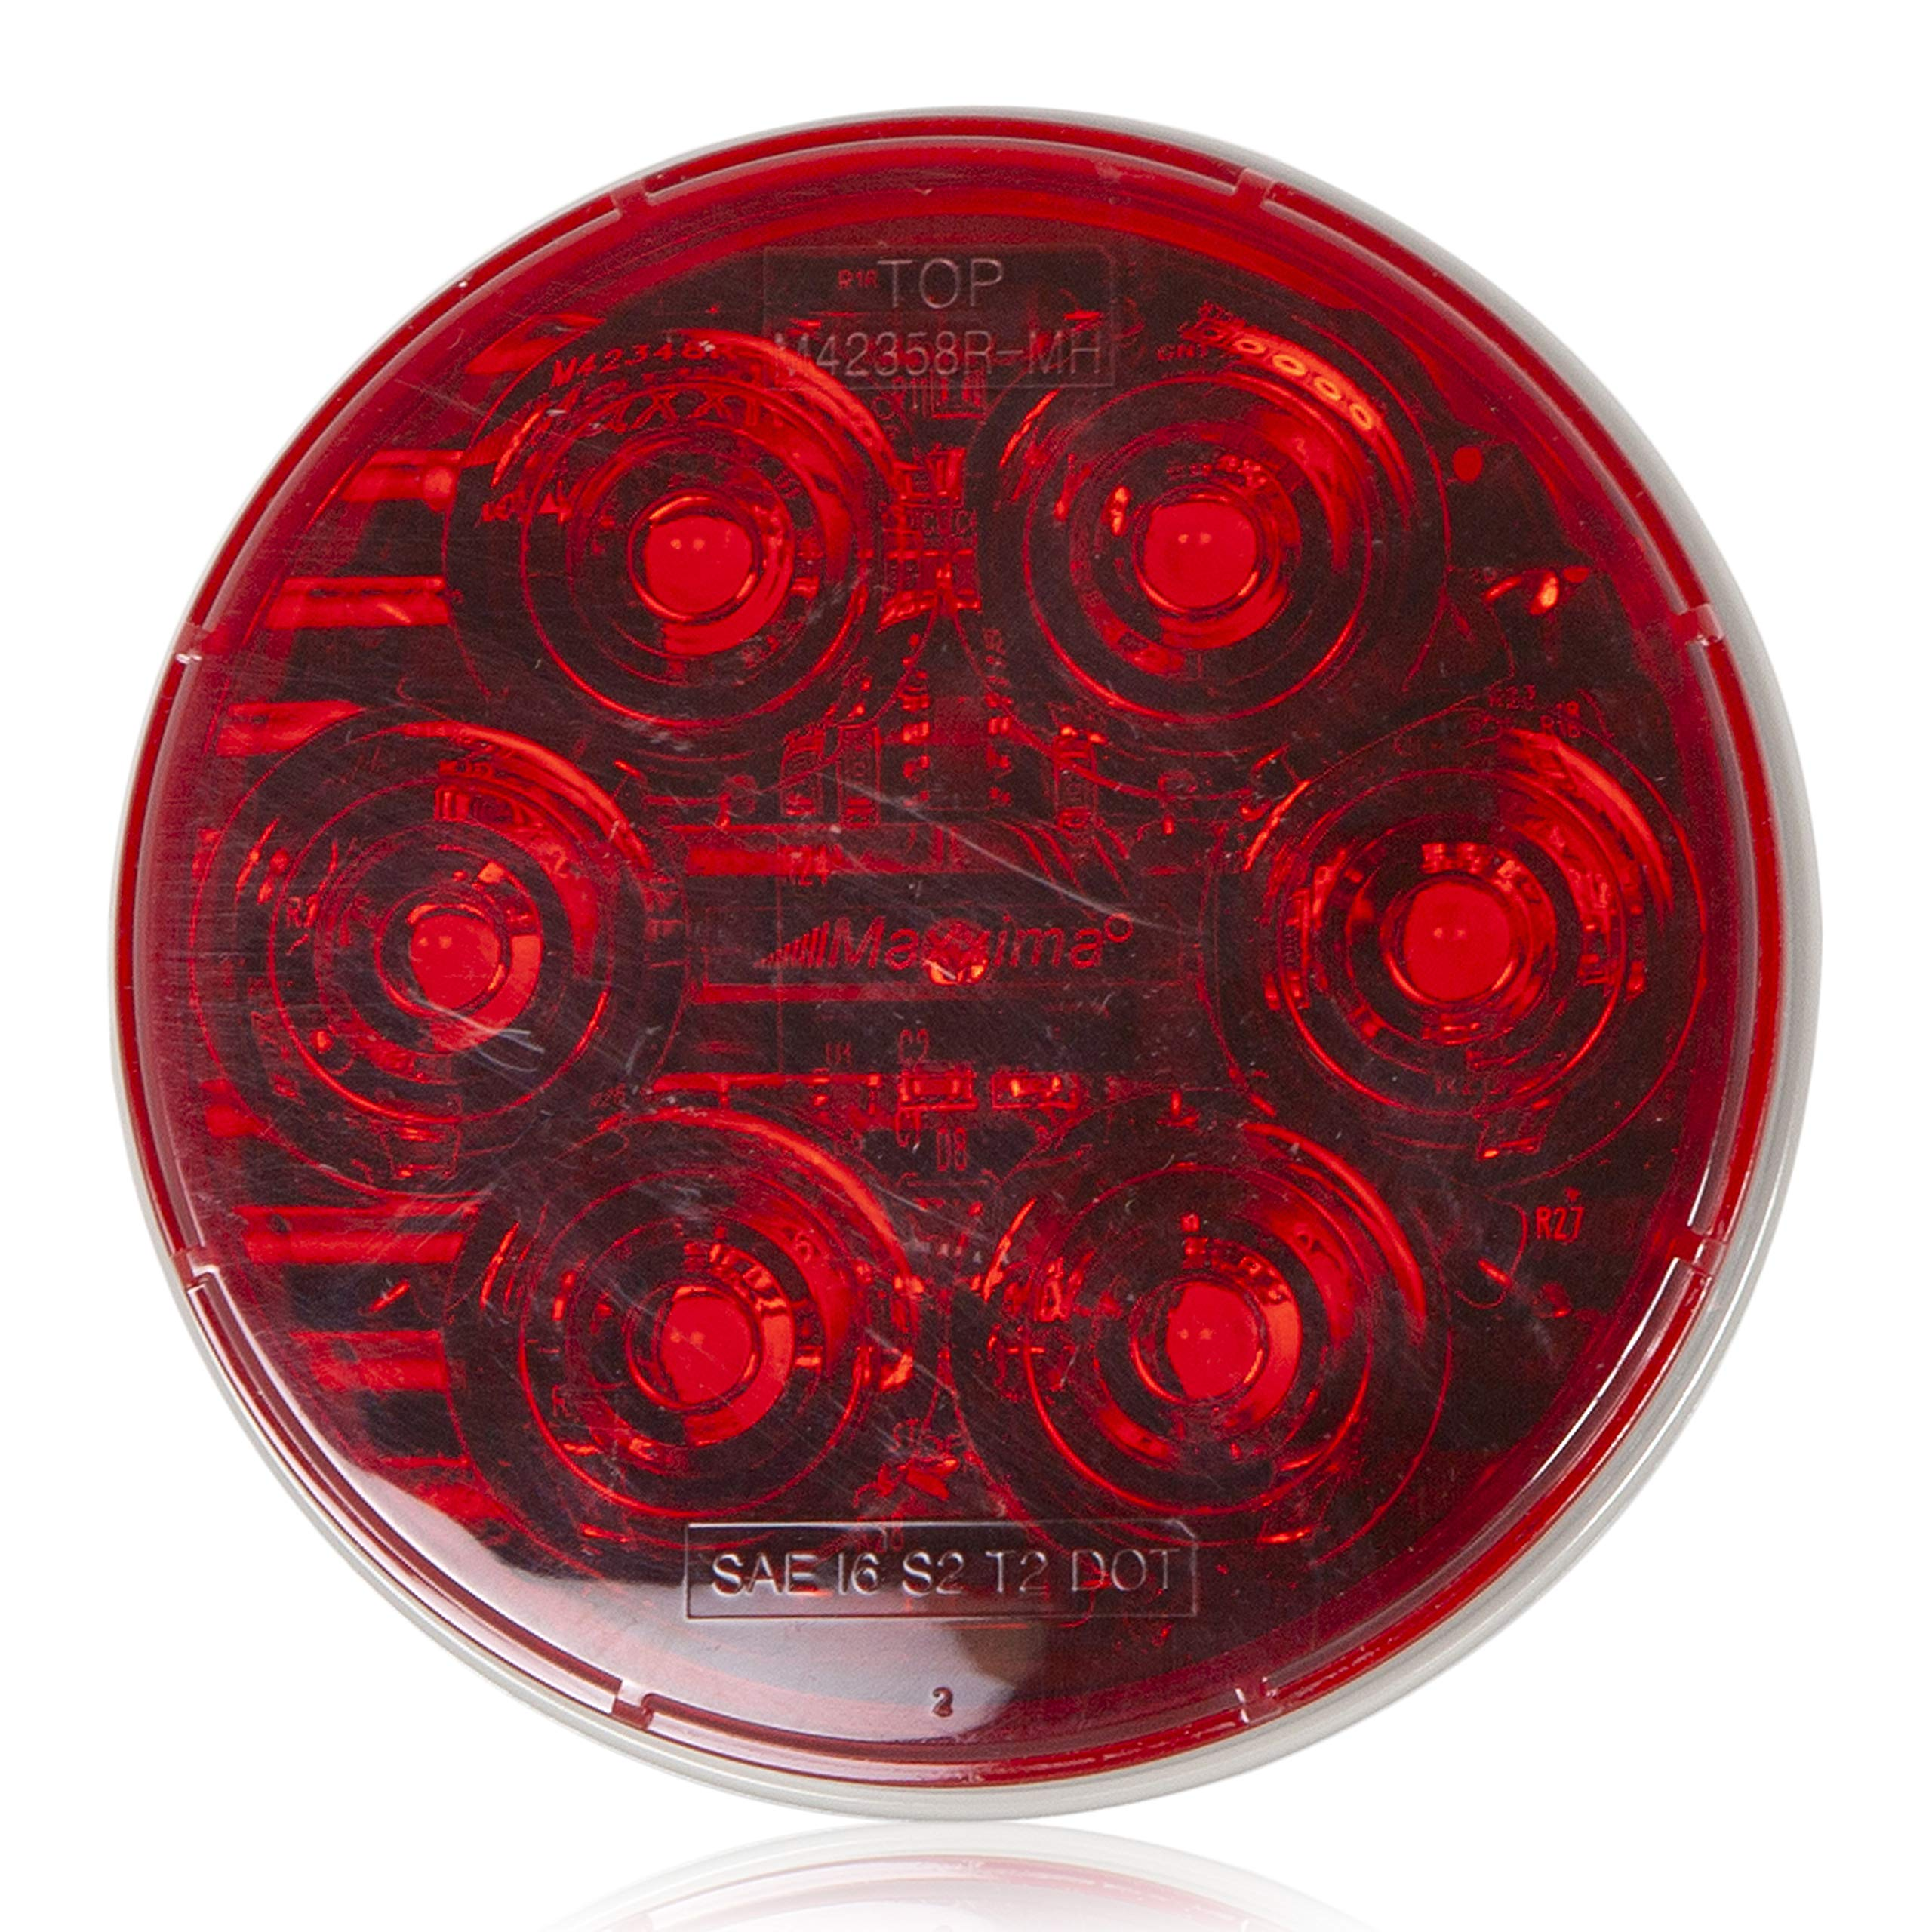 Maxxima M42358R-MH 6 LED Red 4'' Round Stop/Tail/Turn MaxxHeat Lens by Maxxima